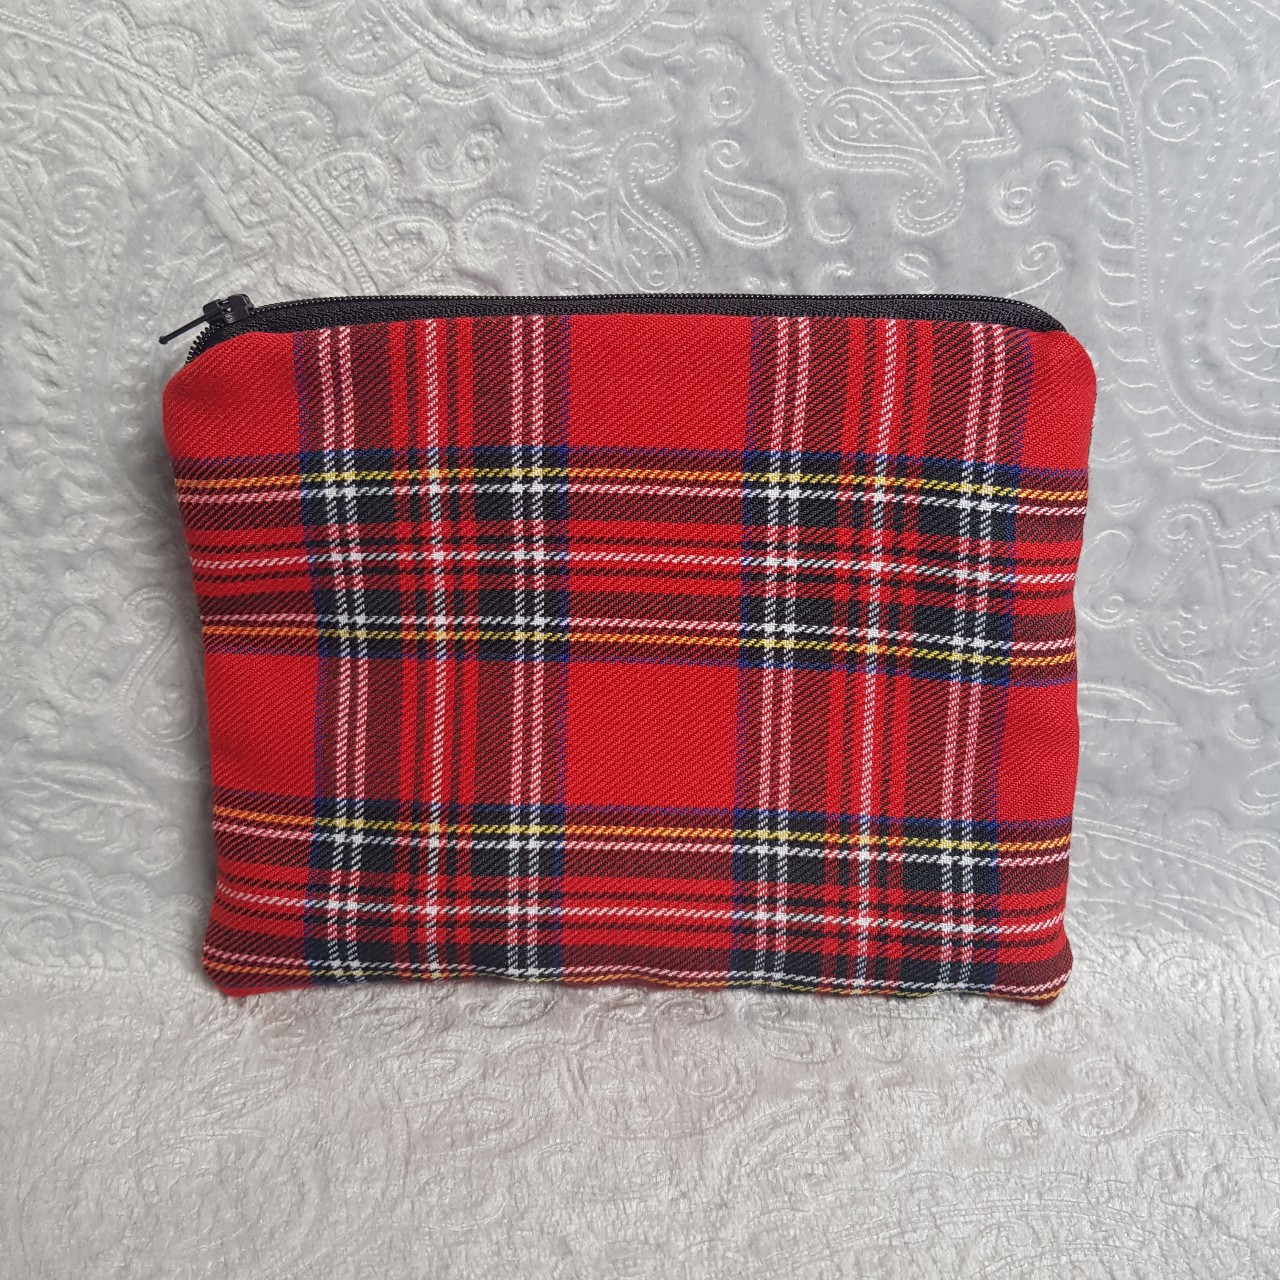 bag/pencil case made from... - Depop